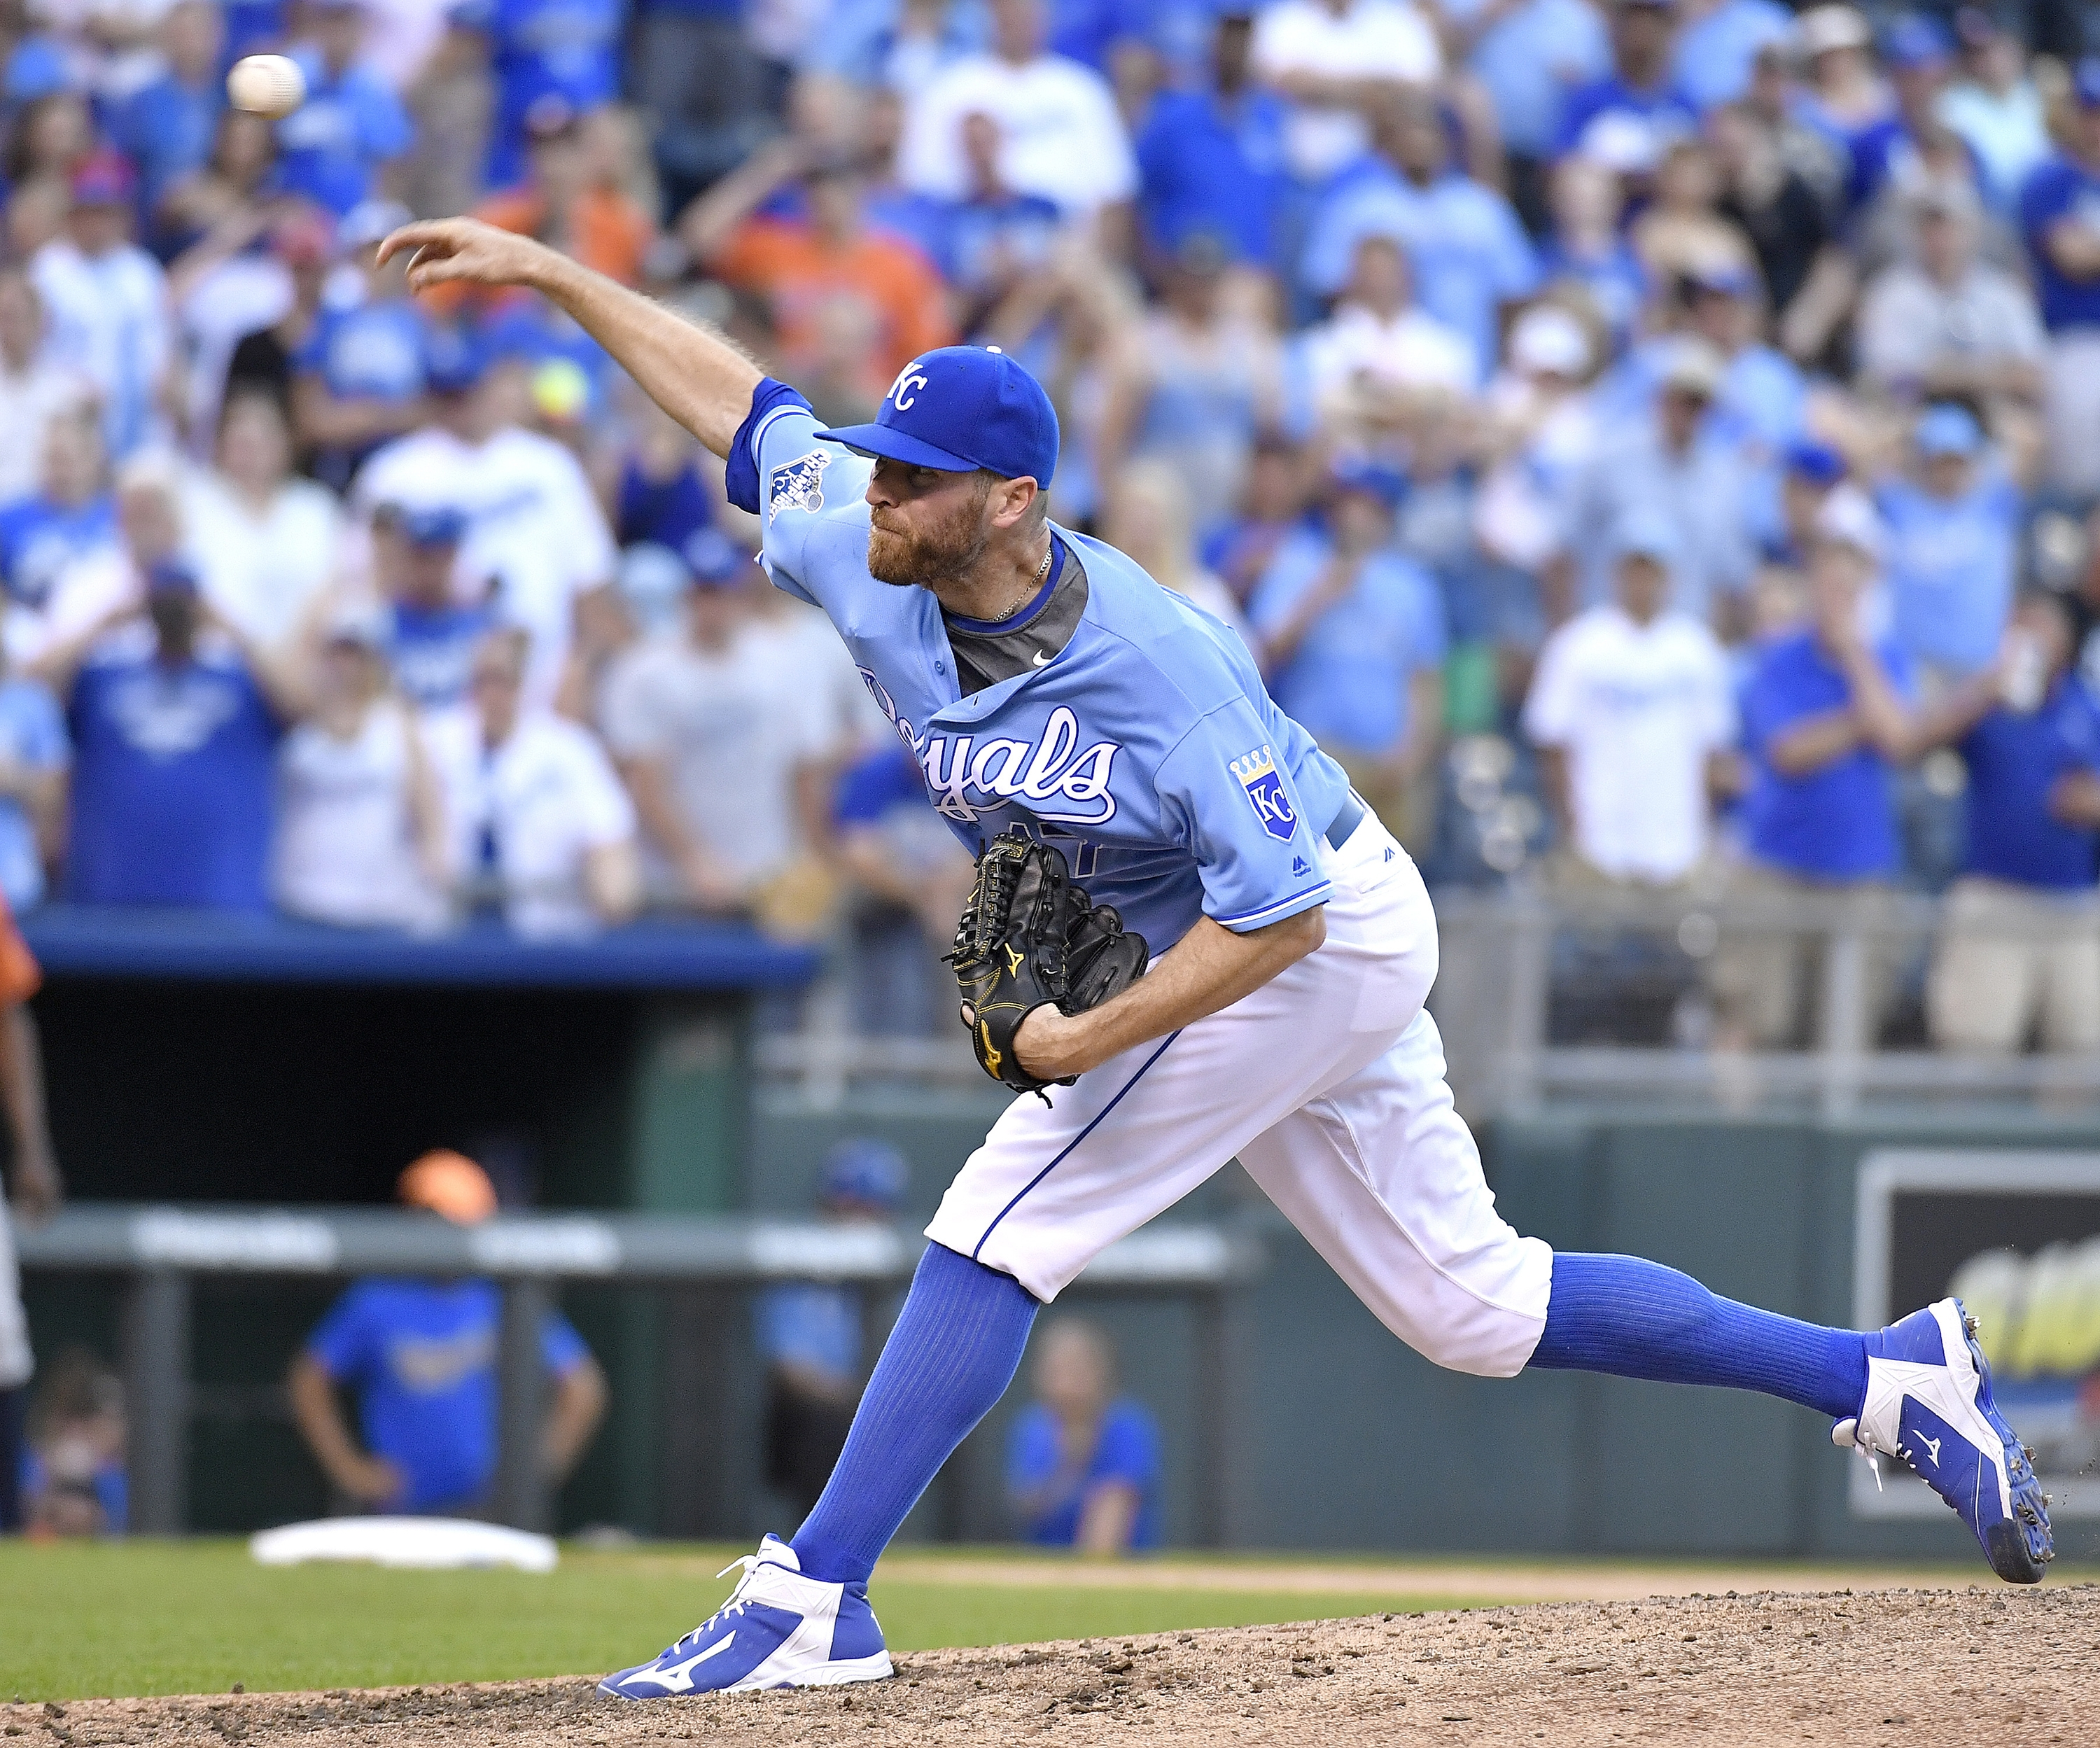 Kansas City Royals relief pitcher Wade Davis closes out the ninth inning for a 6-1 win over the Houston Astros on Sunday, June 26, 2016, at Kauffman Stadium in Kansas City, Mo. (John Sleezer/Kansas City Star/TNS)